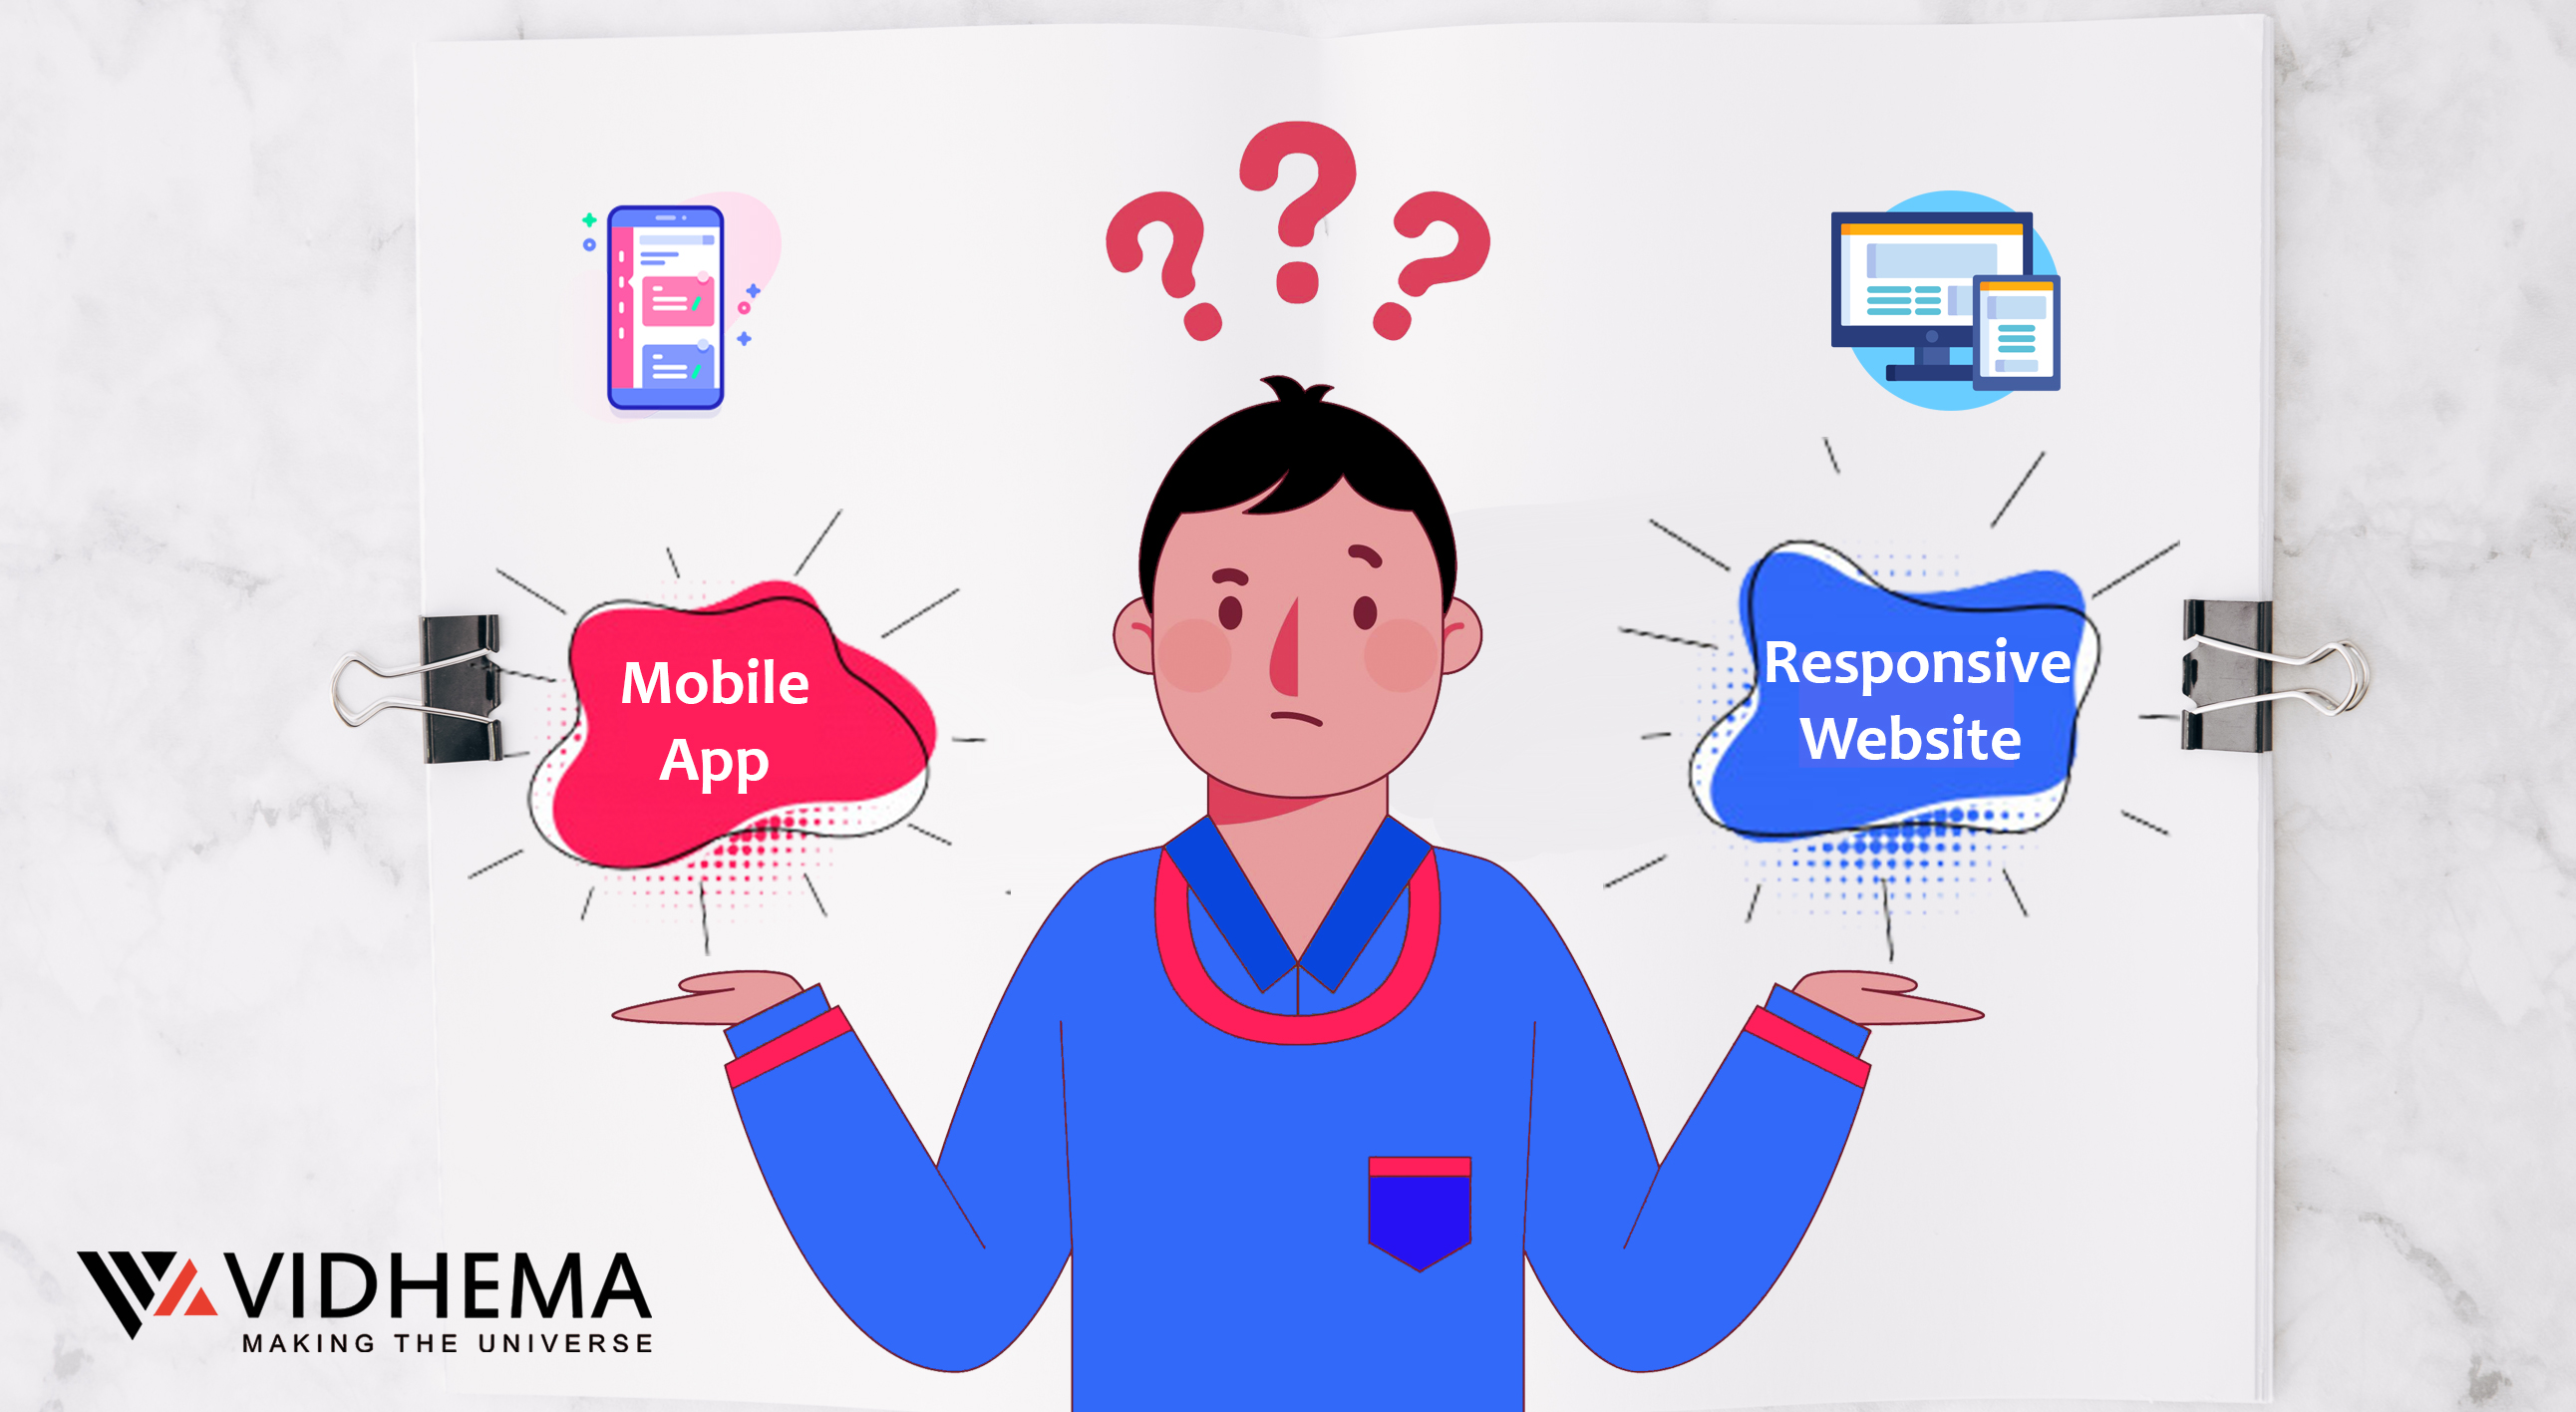 Responsive Website vs Mobile App